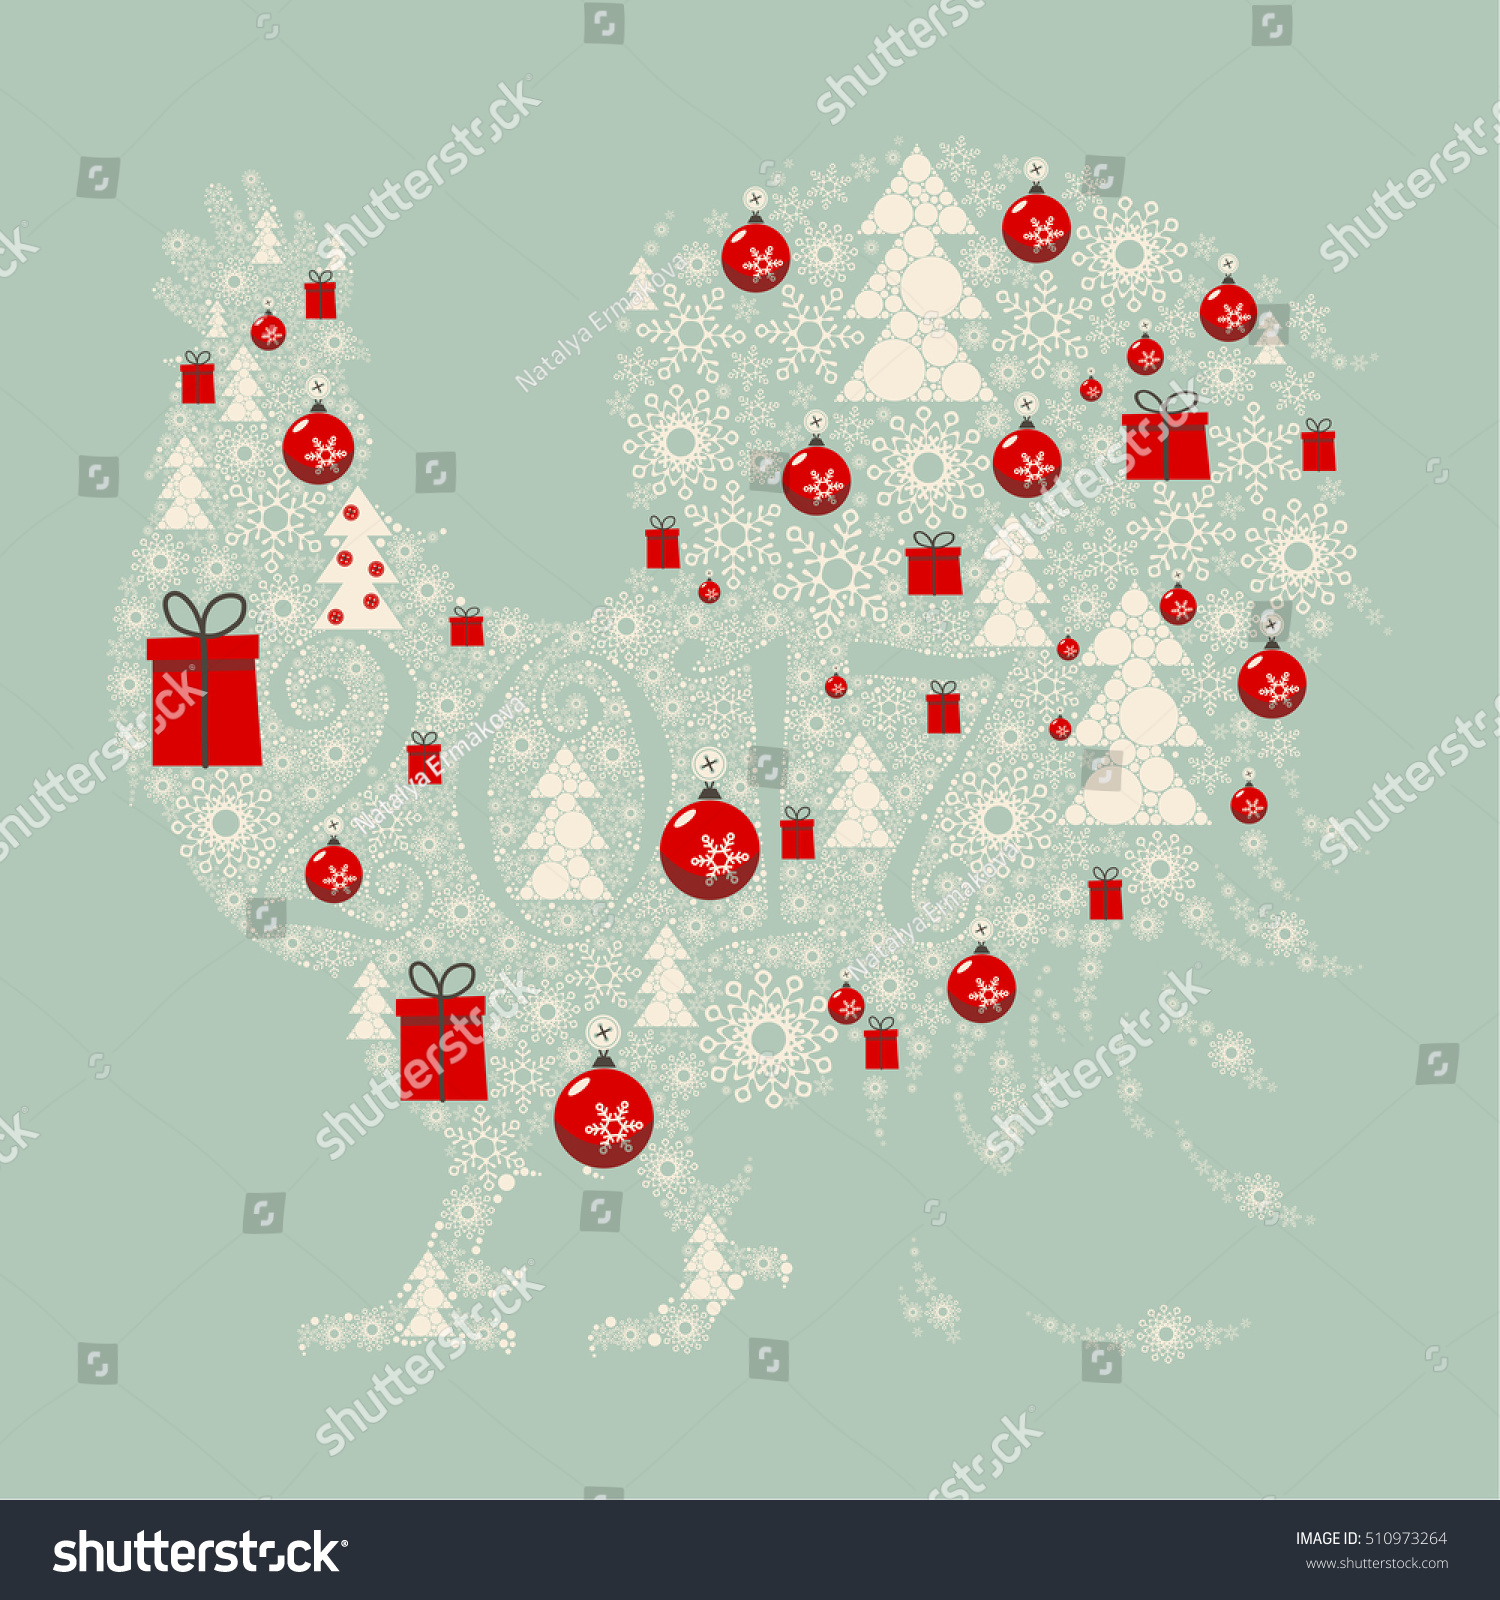 Design Greeting Cards New Year Christmas Stock Vector 510973264